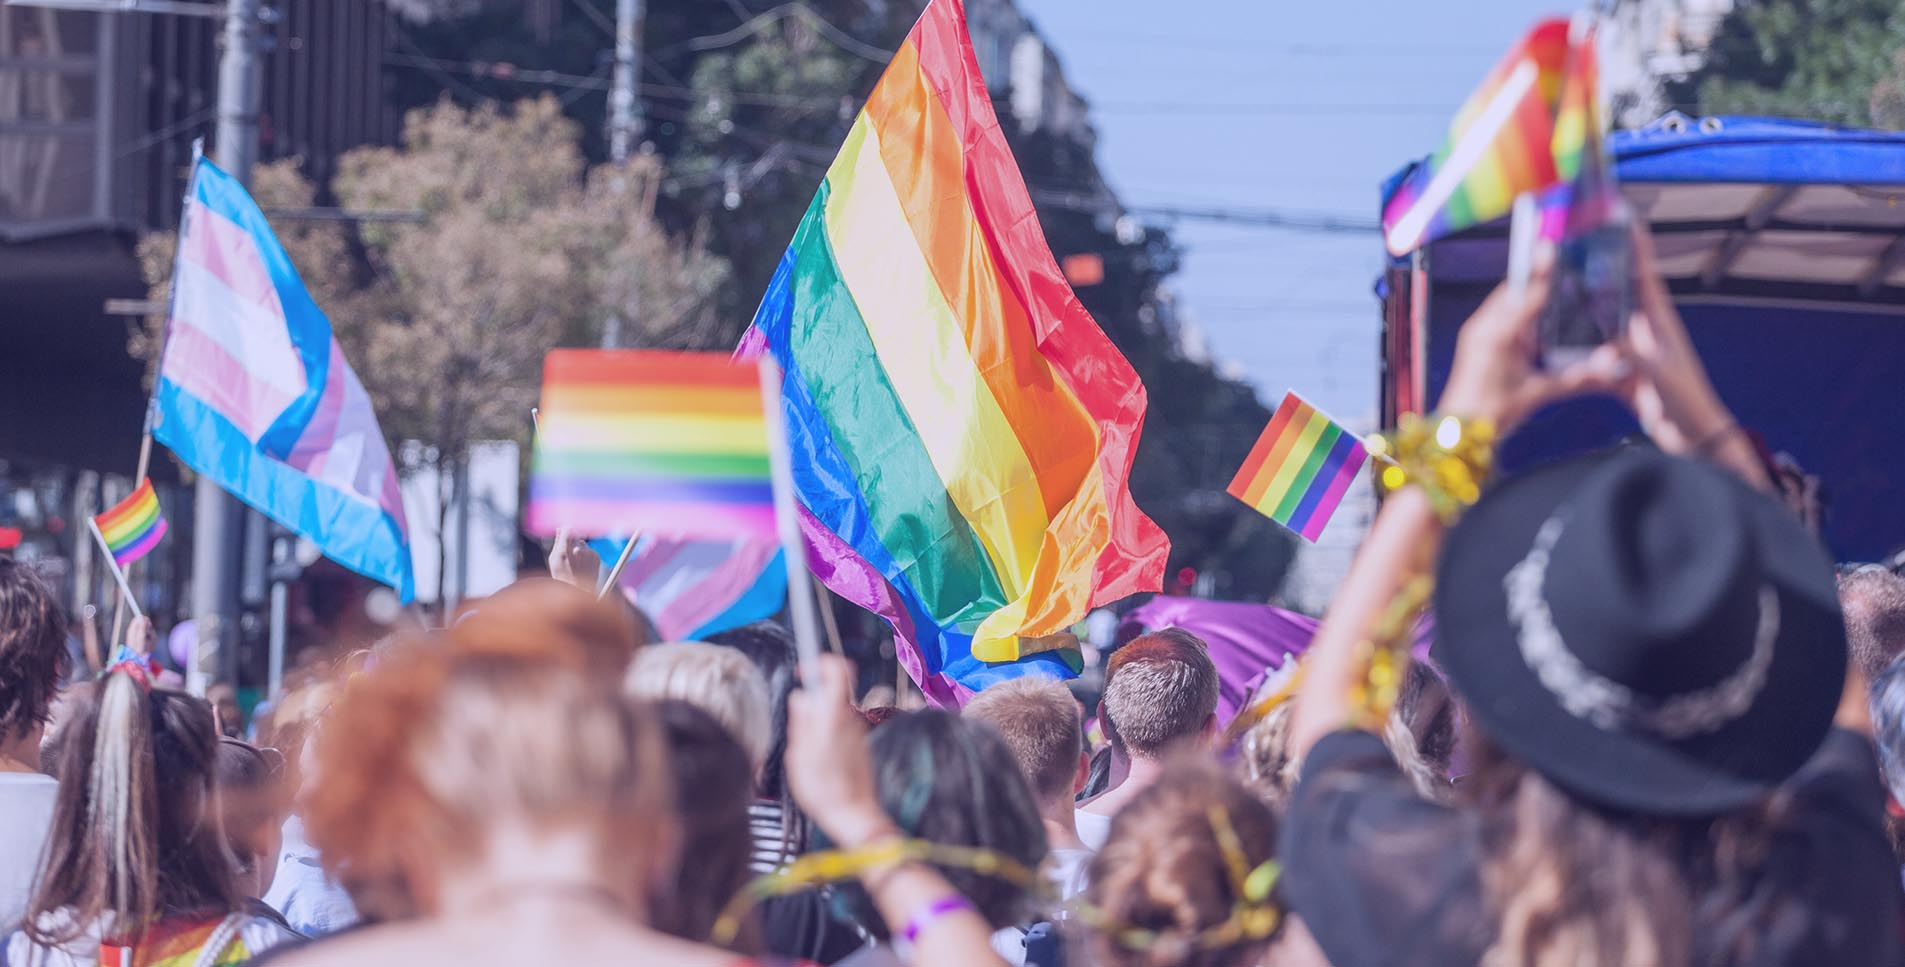 https://gravityspeakers.com/wp-content/uploads/LGBTQ-Home-Supporting-Voices-of-Change.jpg